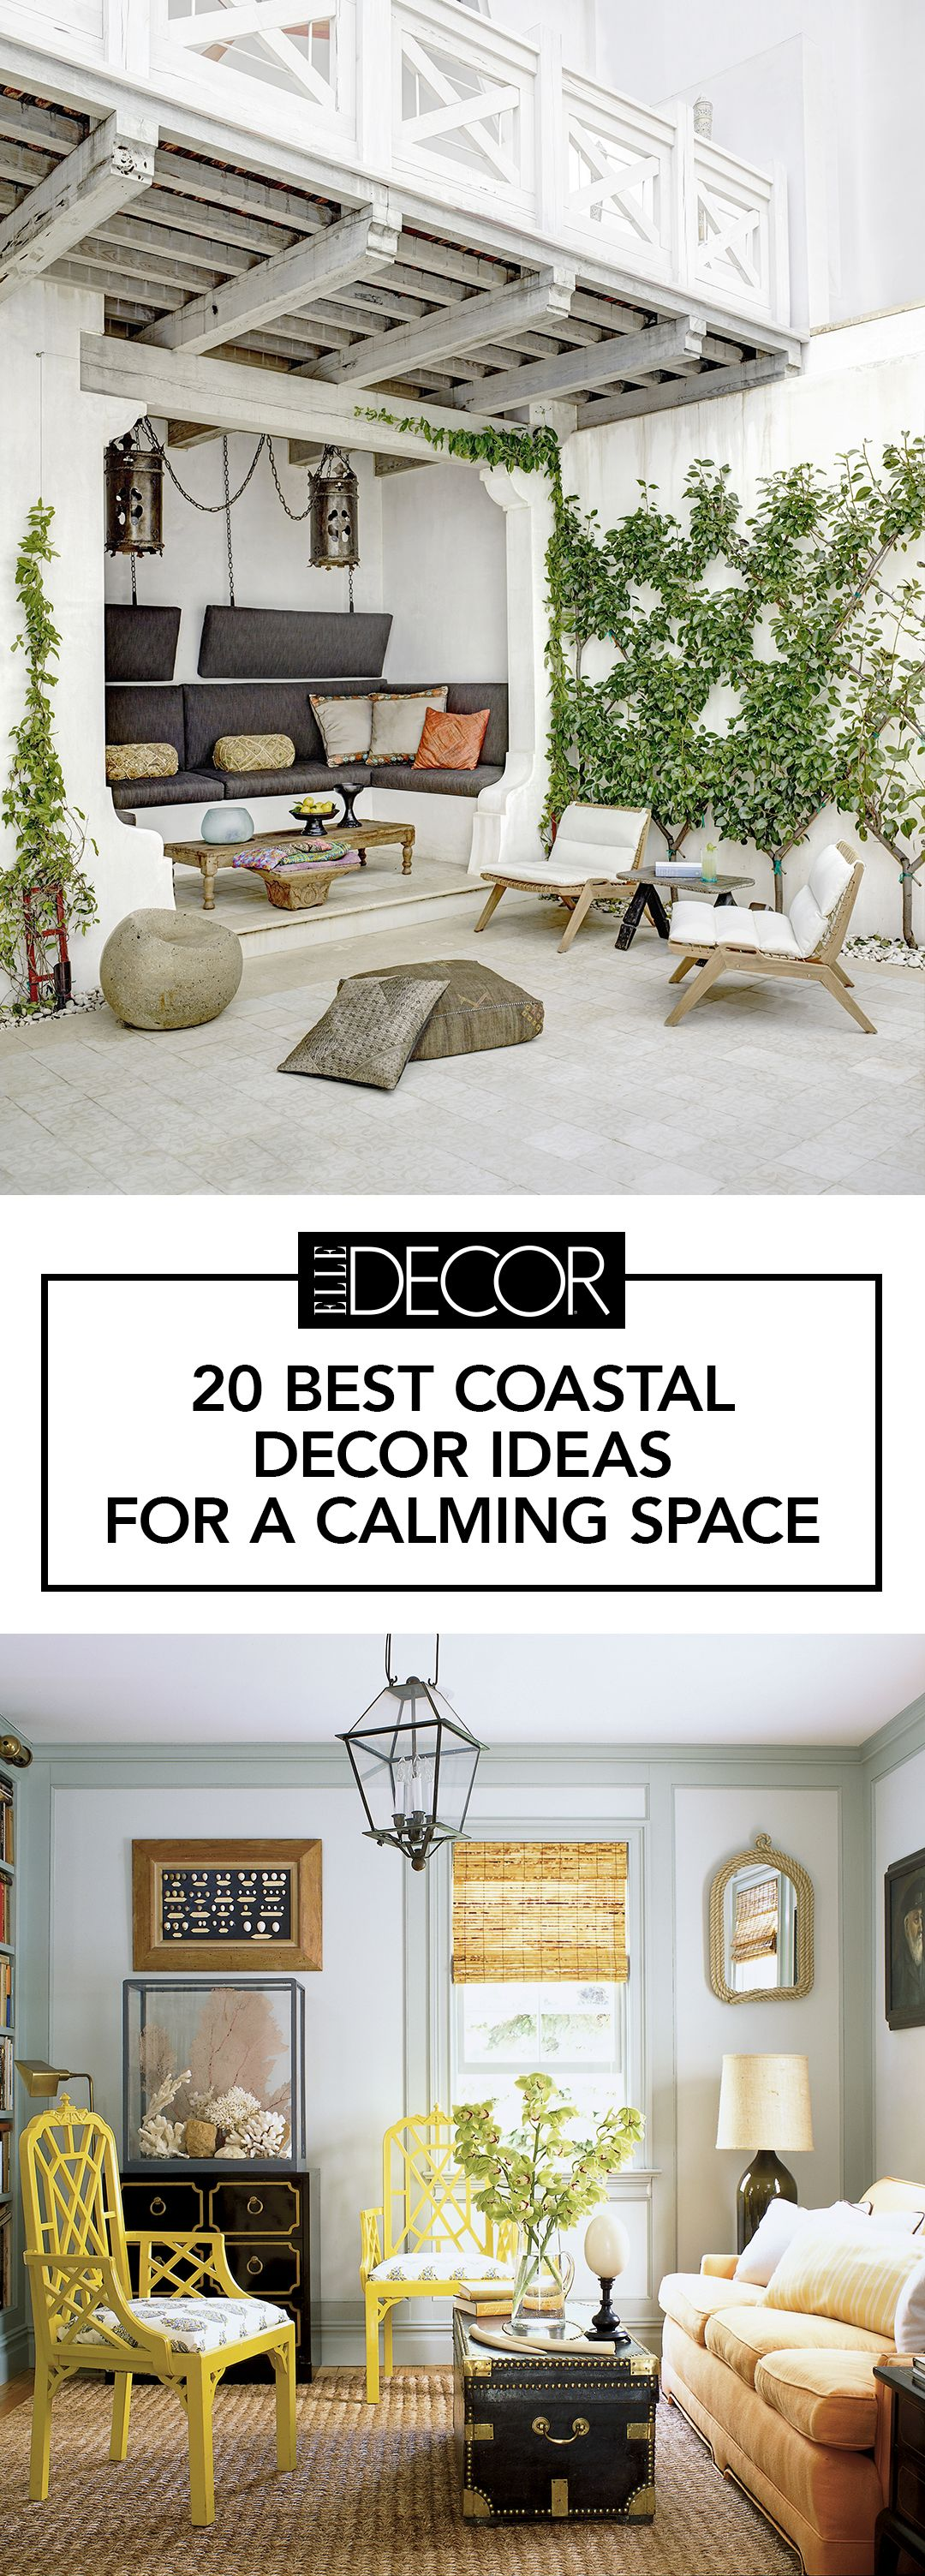 20 Coastal Home Decor Ideas - Rooms with Coastal Style